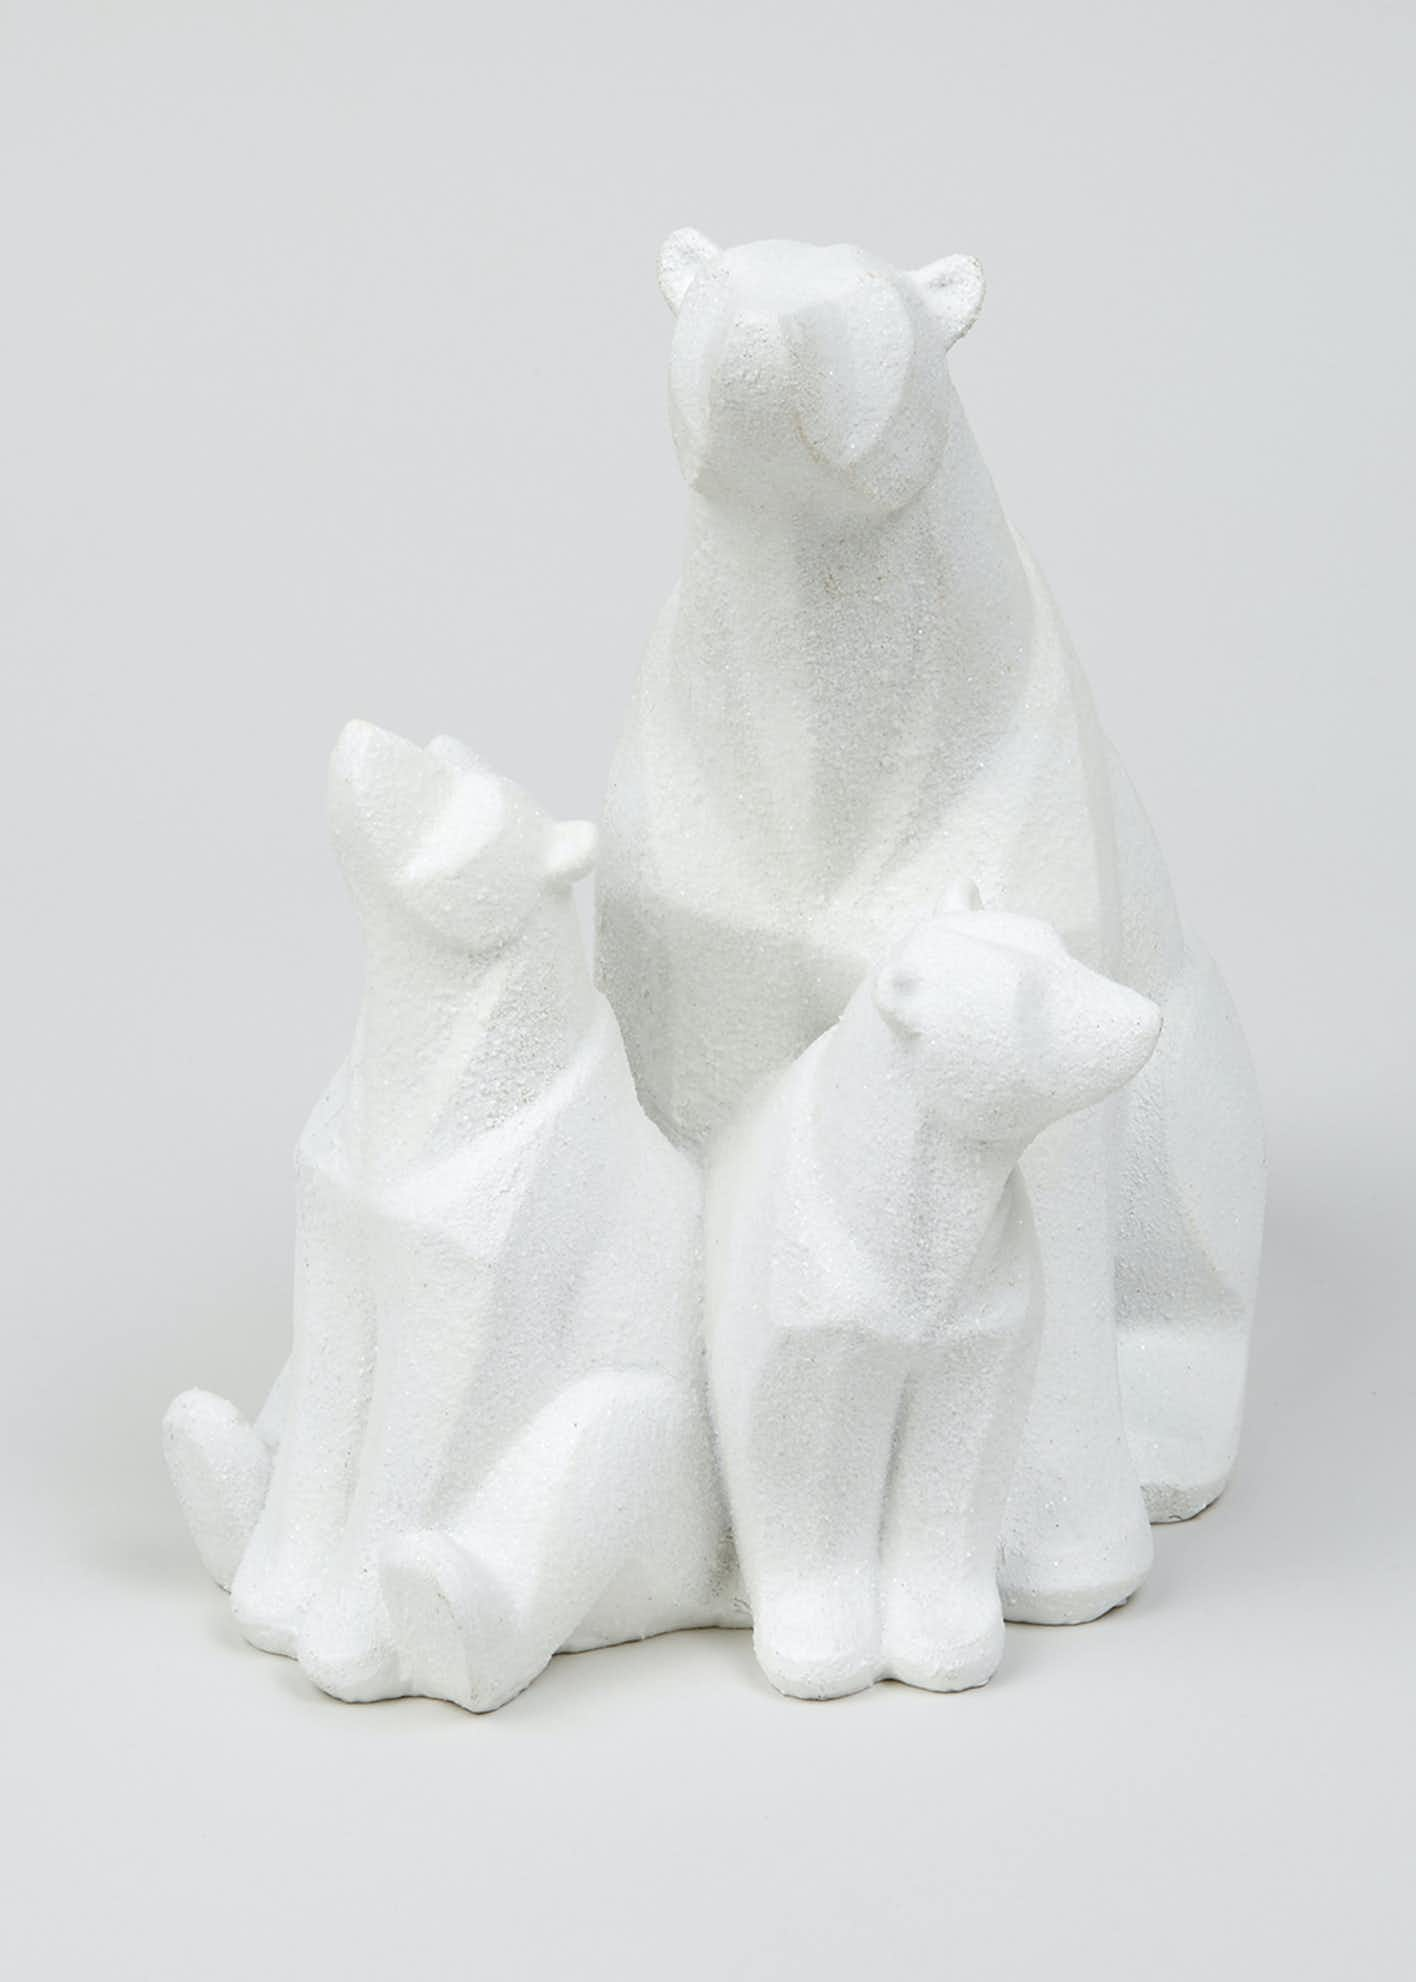 Polar Bear Family Ornament (26cm x 25cm x 20cm)